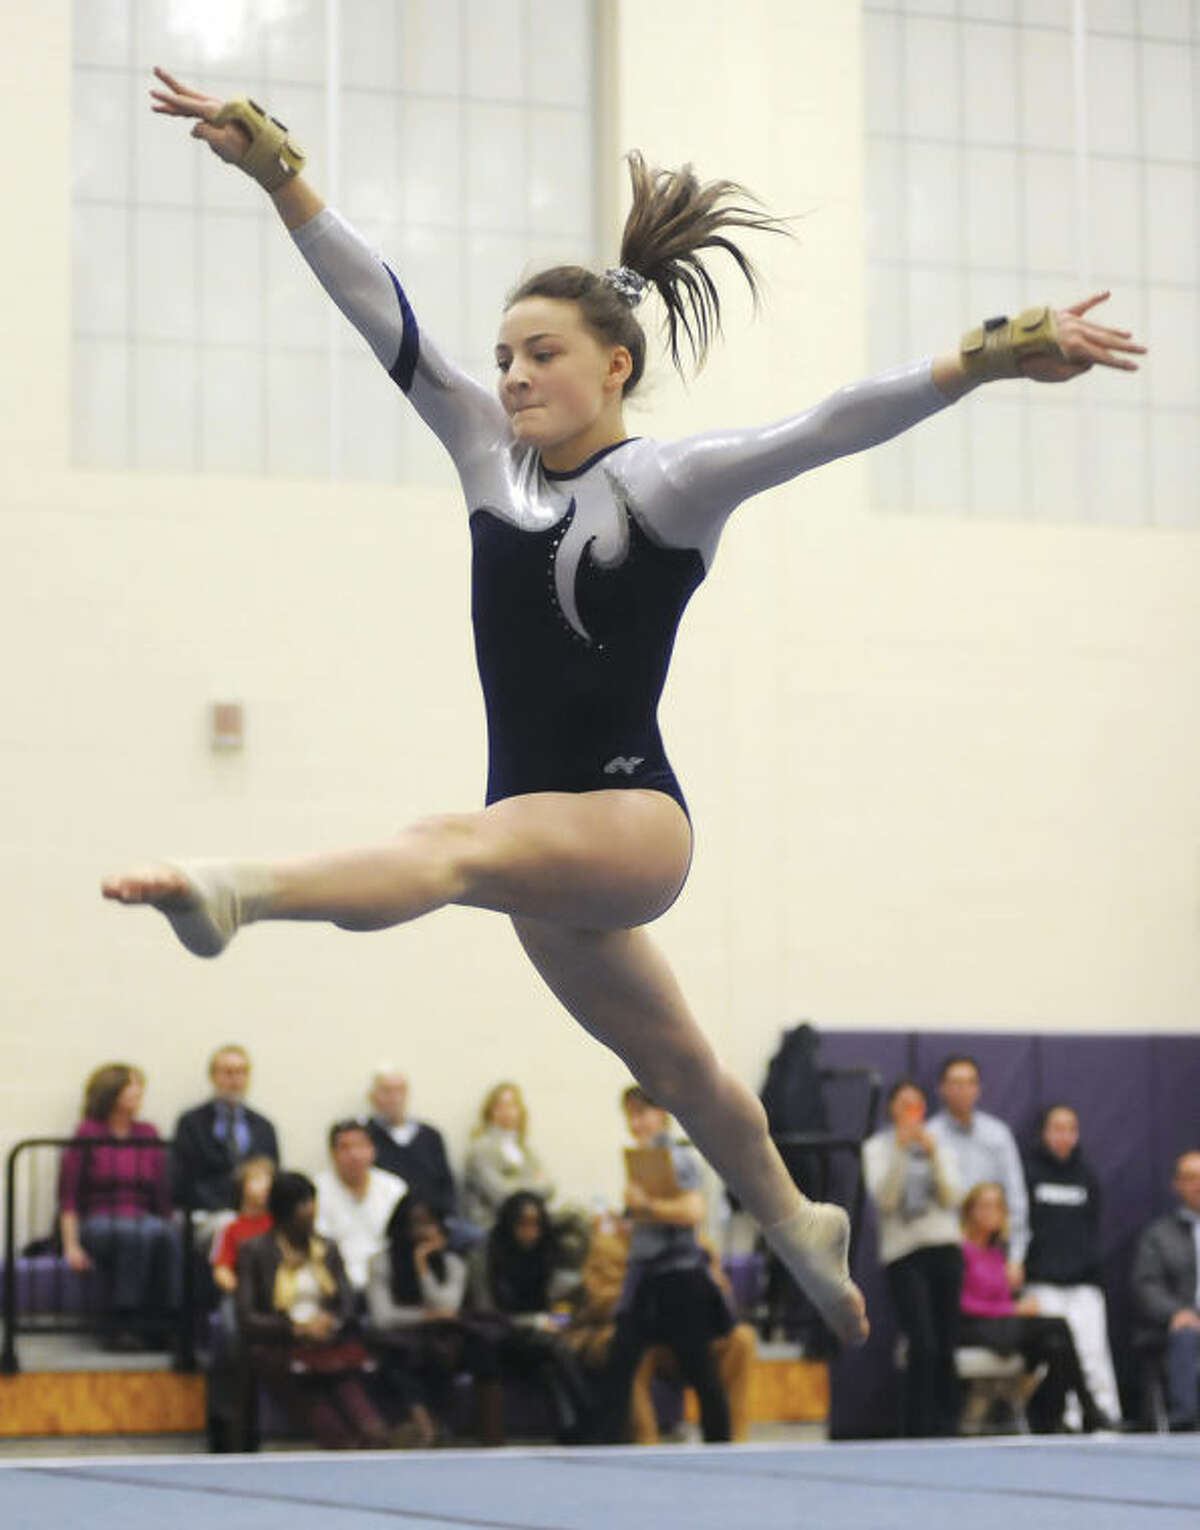 Hour photo/John Nash Staples sophomore Eliza Donovan leaps through air during her floor exercise at Wednesday's tri-meet against Westhill and New Canaan in Stamford.